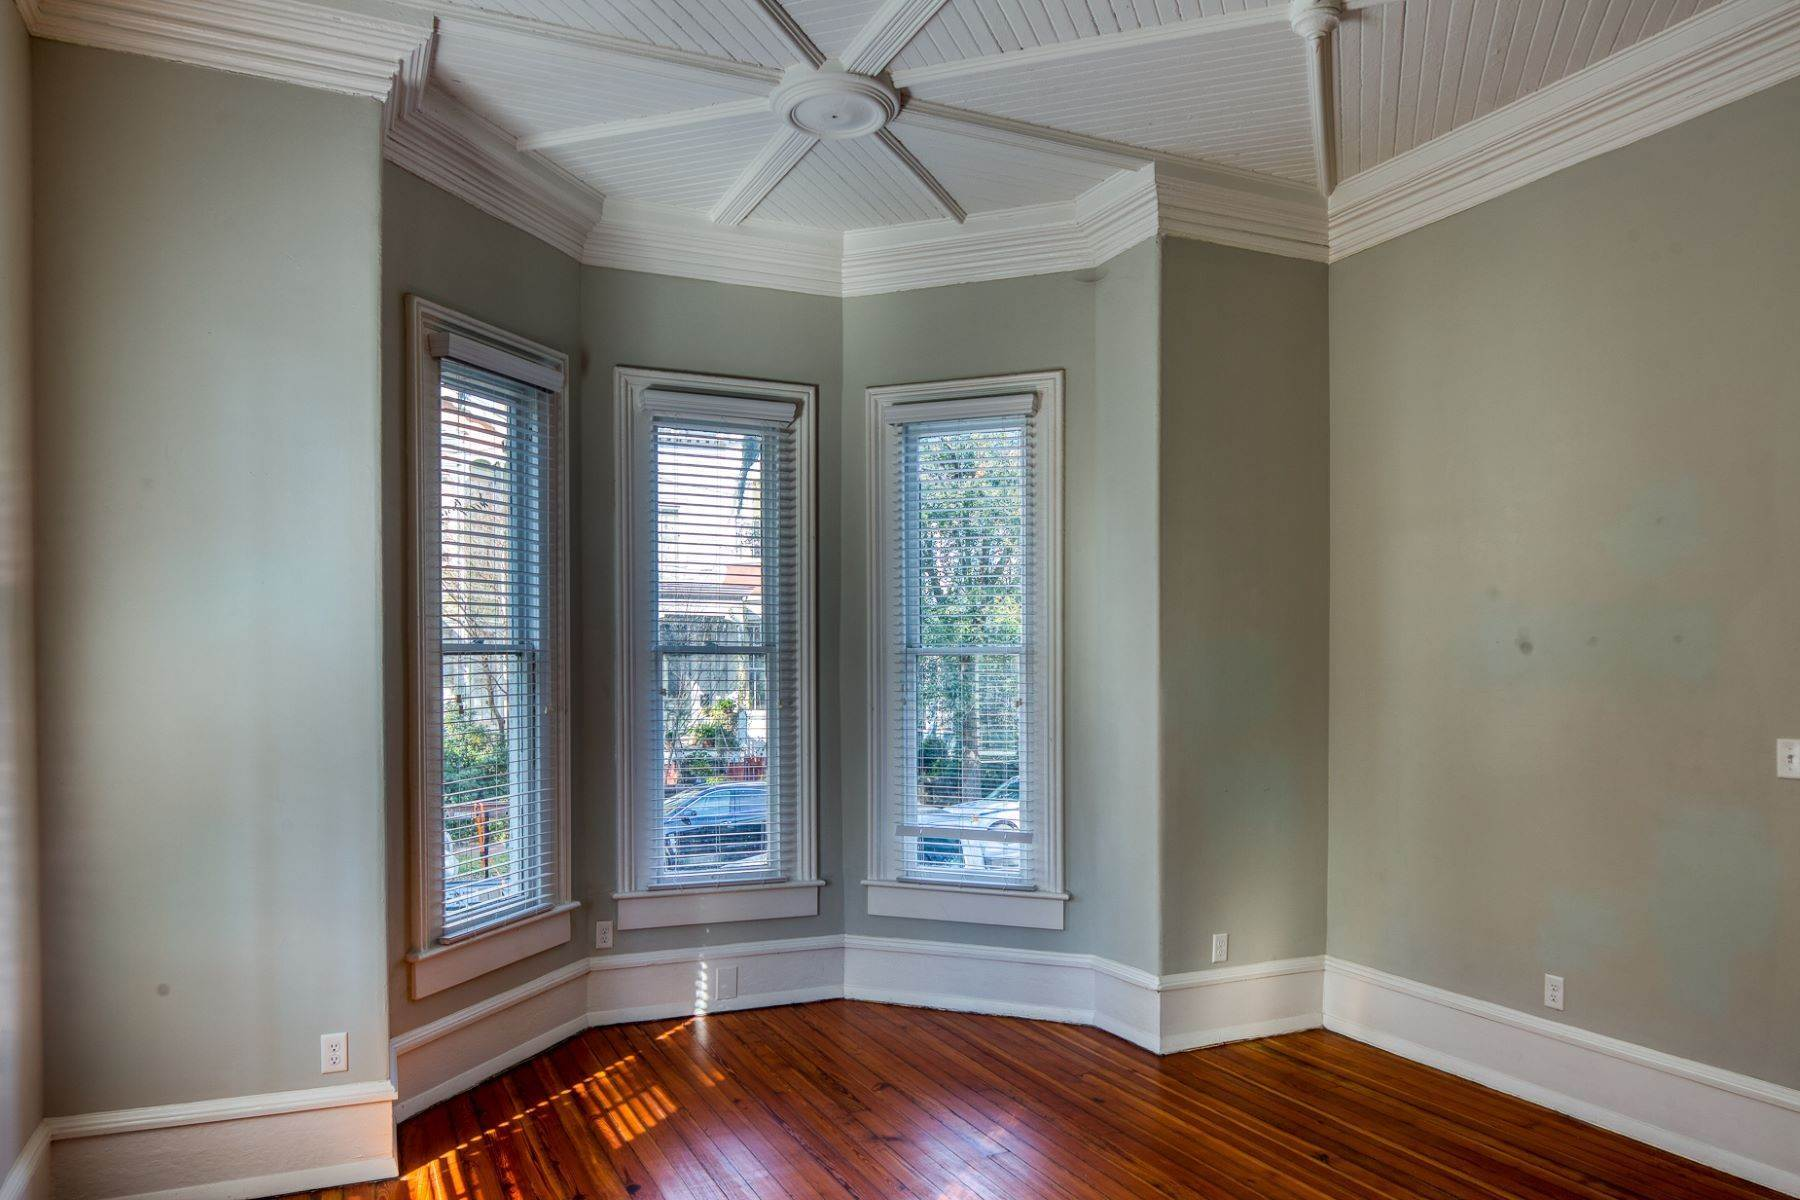 10. Property for Sale at Stunning Six Unit Victorian Apartment Building Near Forsyth Park 109 E Duffy Street Savannah, Georgia 31401 United States